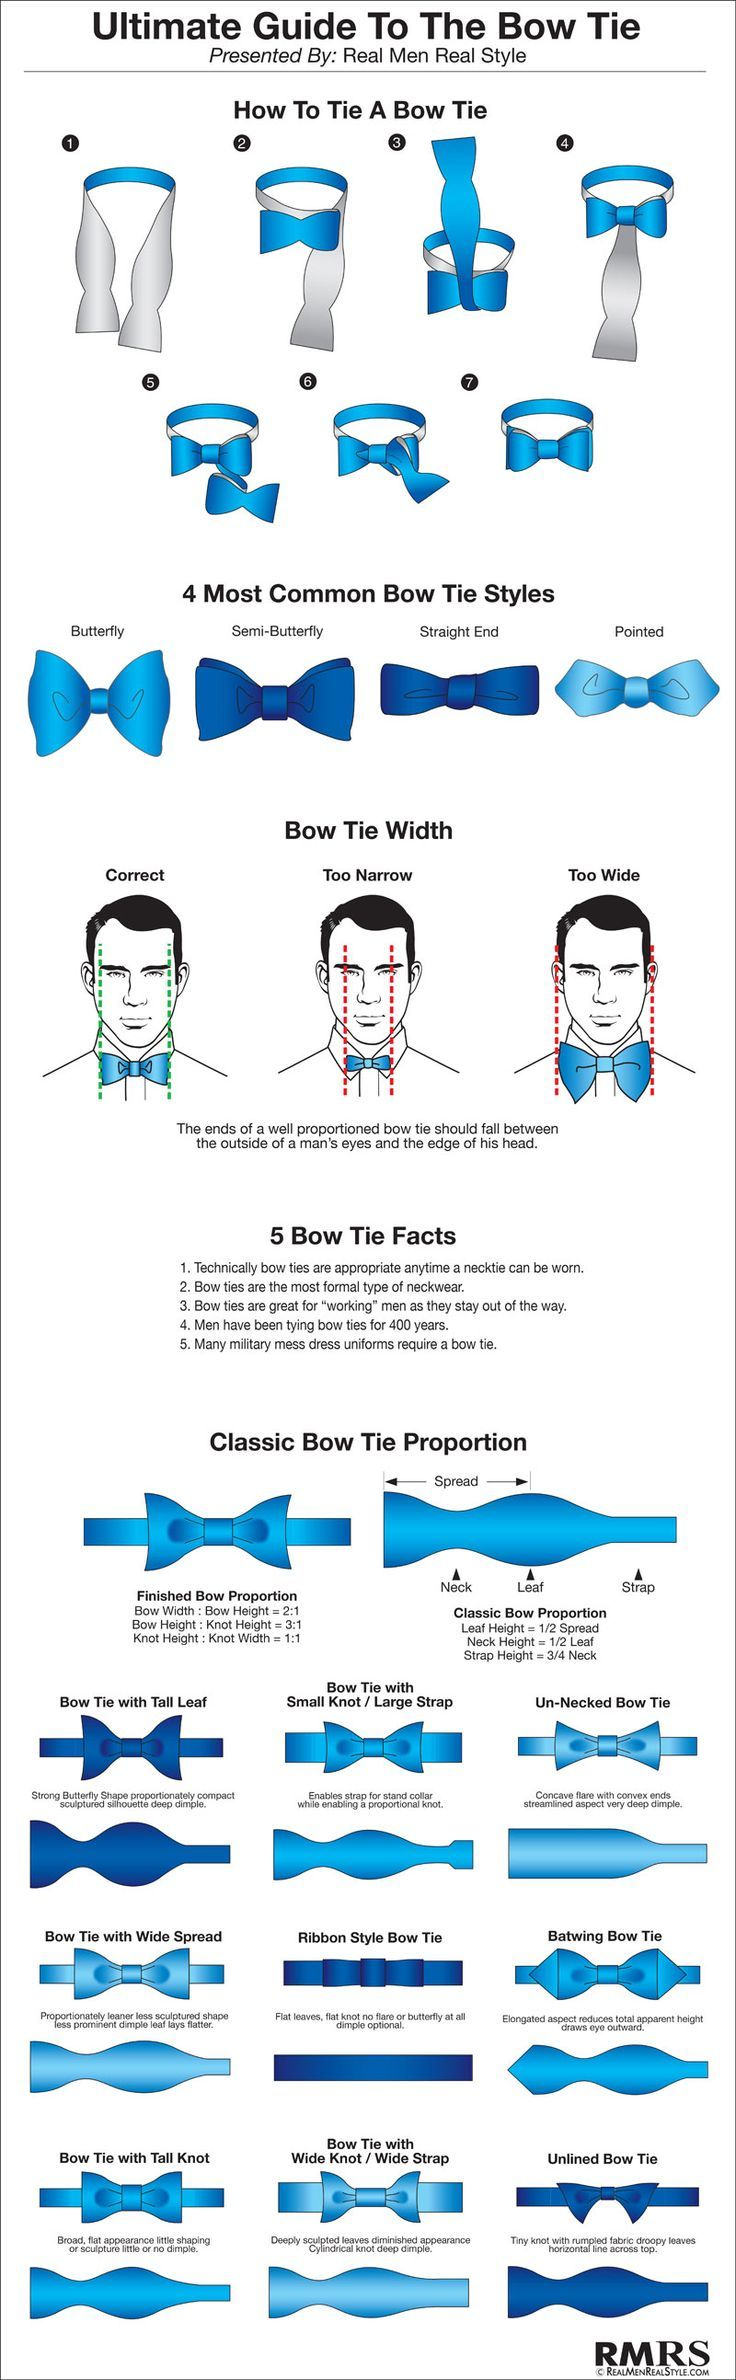 bow-tie, ultimate guide to tie bow tie